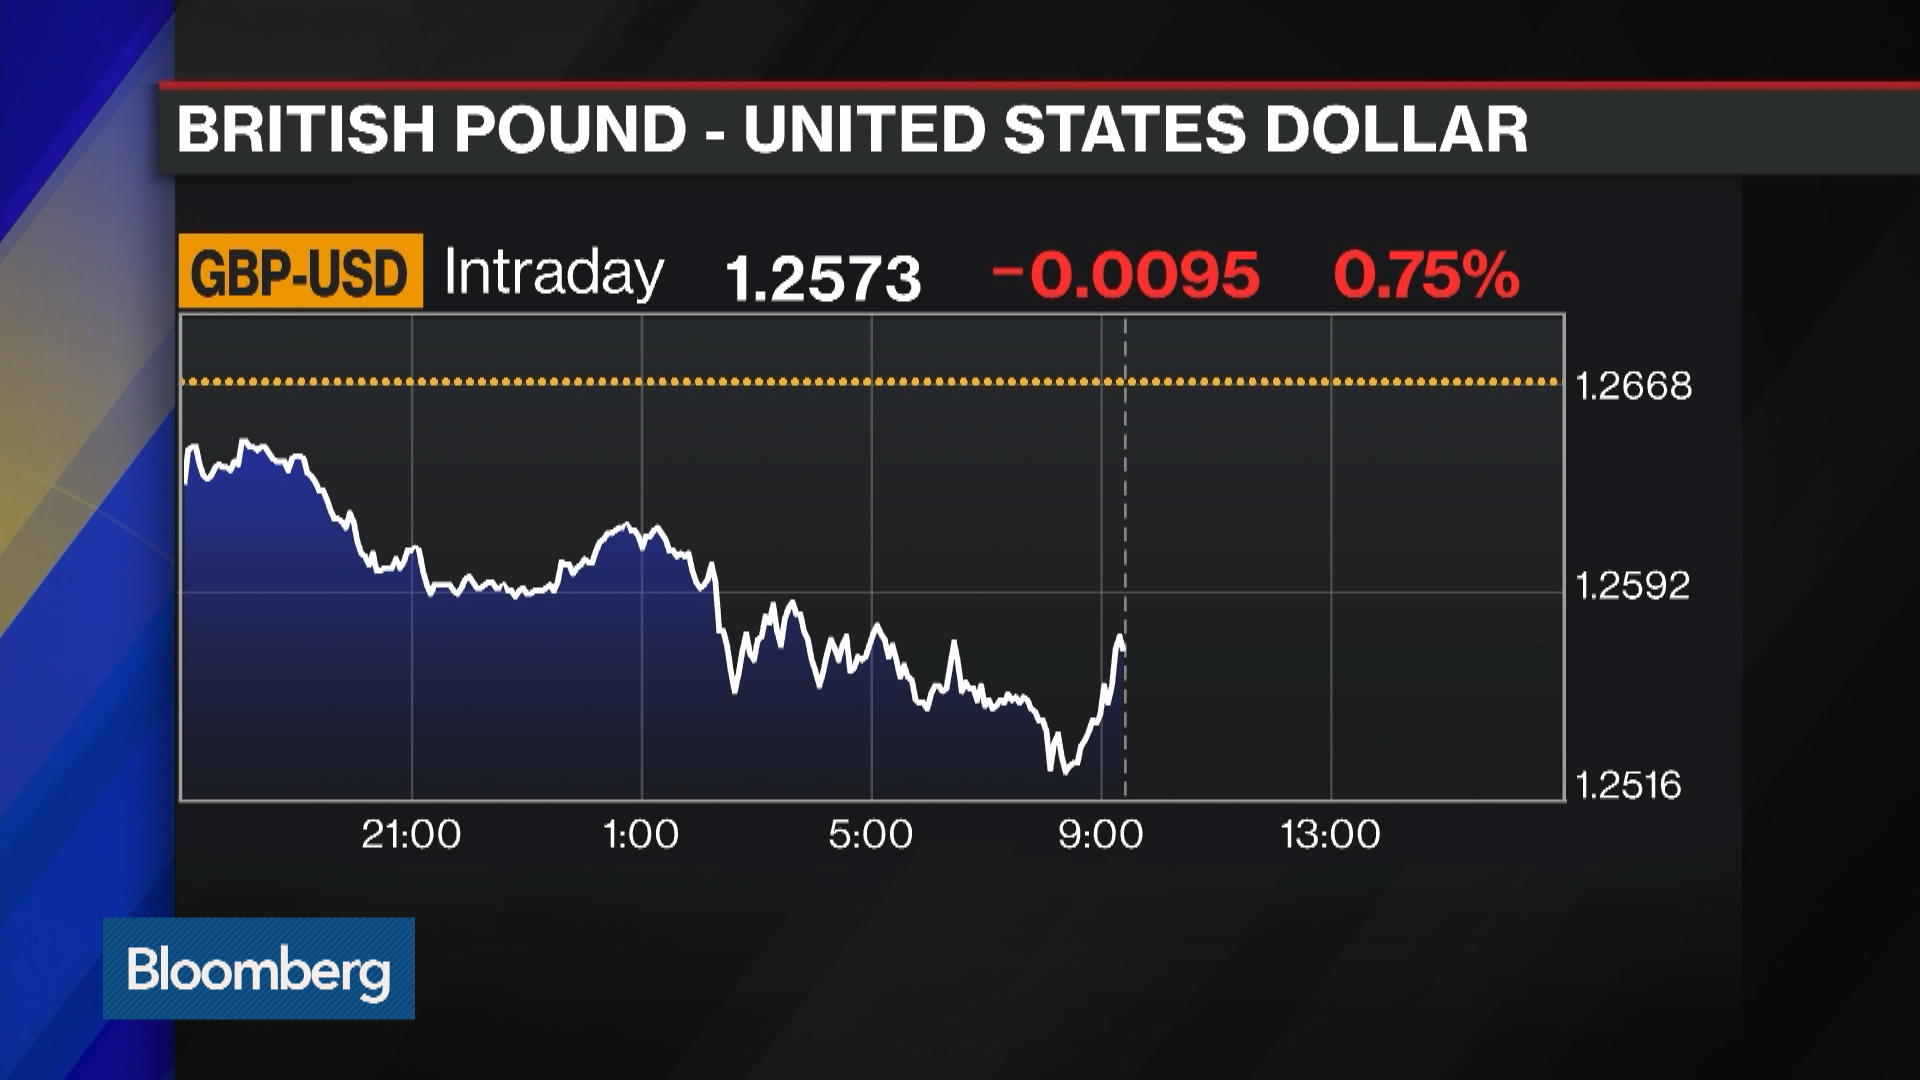 Pound Drops From Three-Month High on Brexit Deal Reality Check